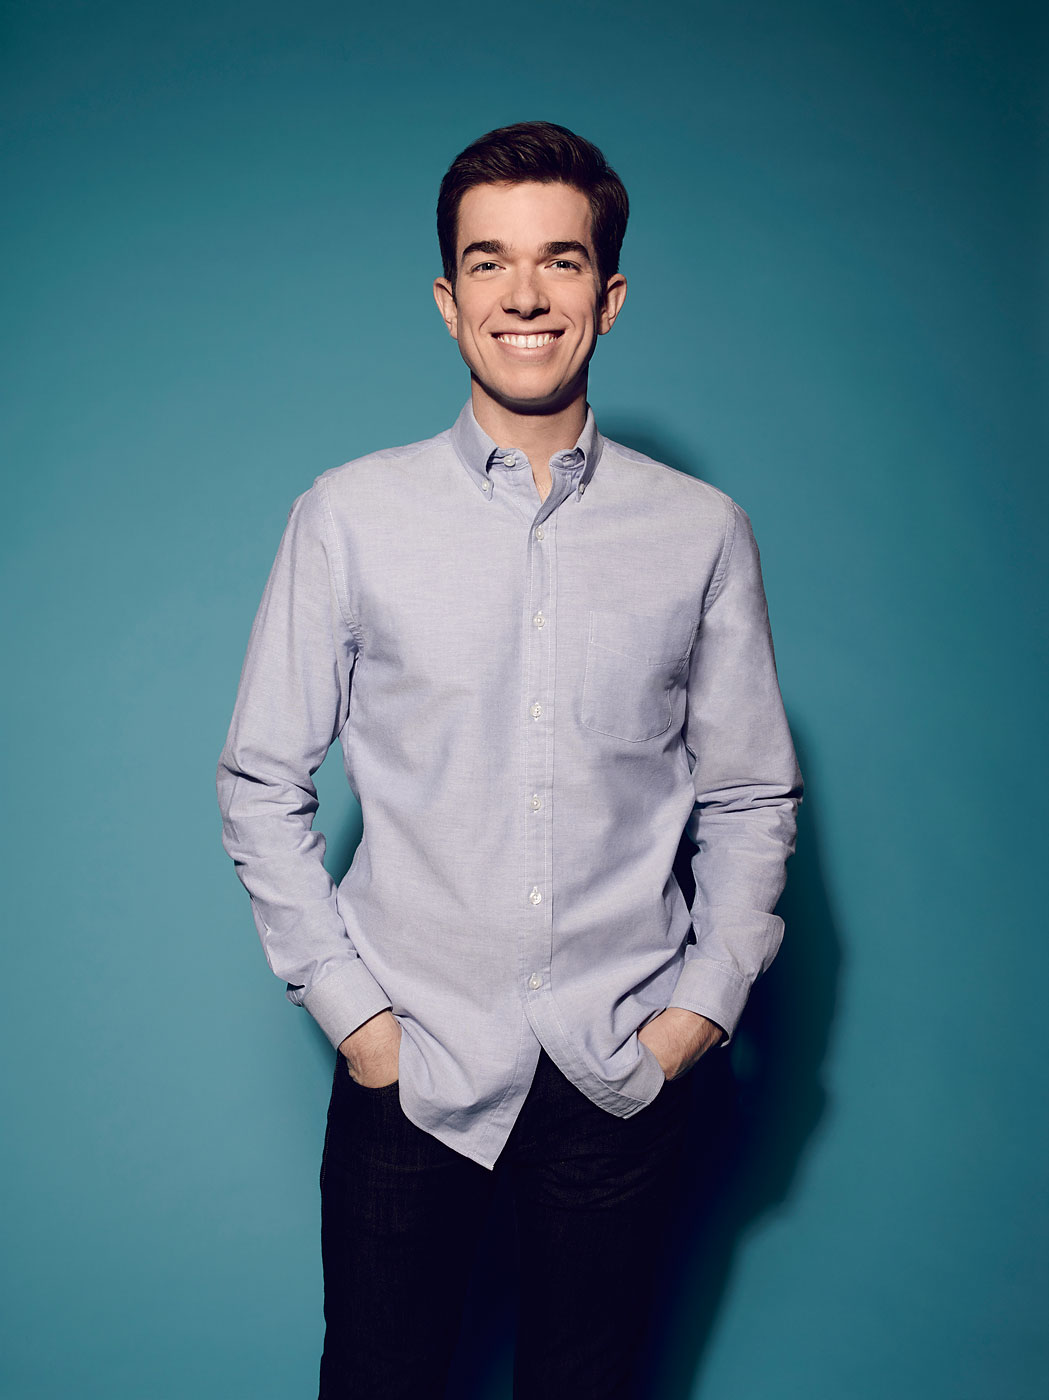 After NBC declined to pick up his pilot in 2013, Mulaney brought it over to Fox, where it has been billed as one of the fall's top new comedies. The story is loosely based on the comedian's own life.